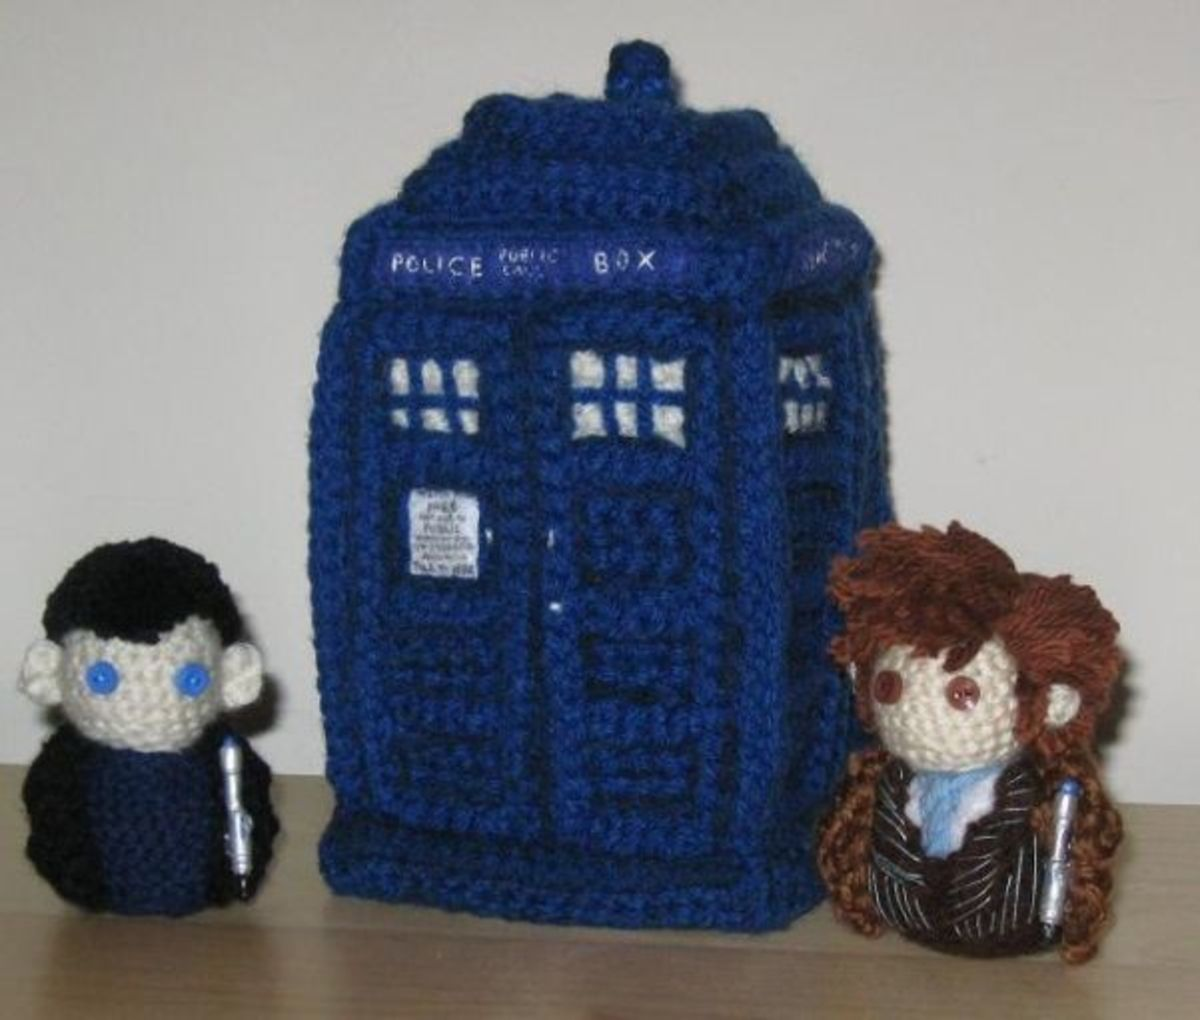 9th and 10th Doctors, and the TARDIS